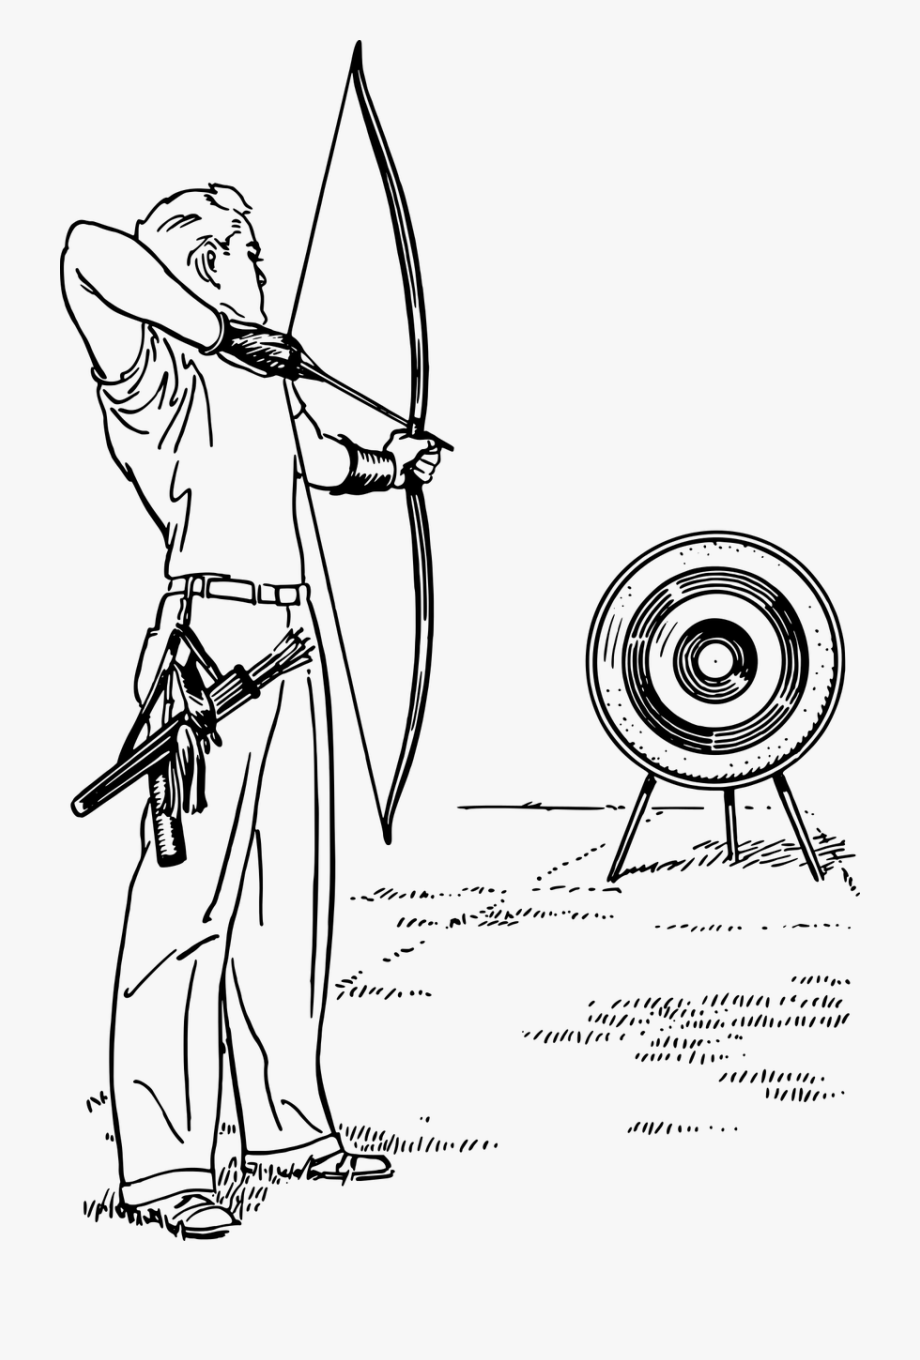 Archery clipart black and white. Archer arrow bow png